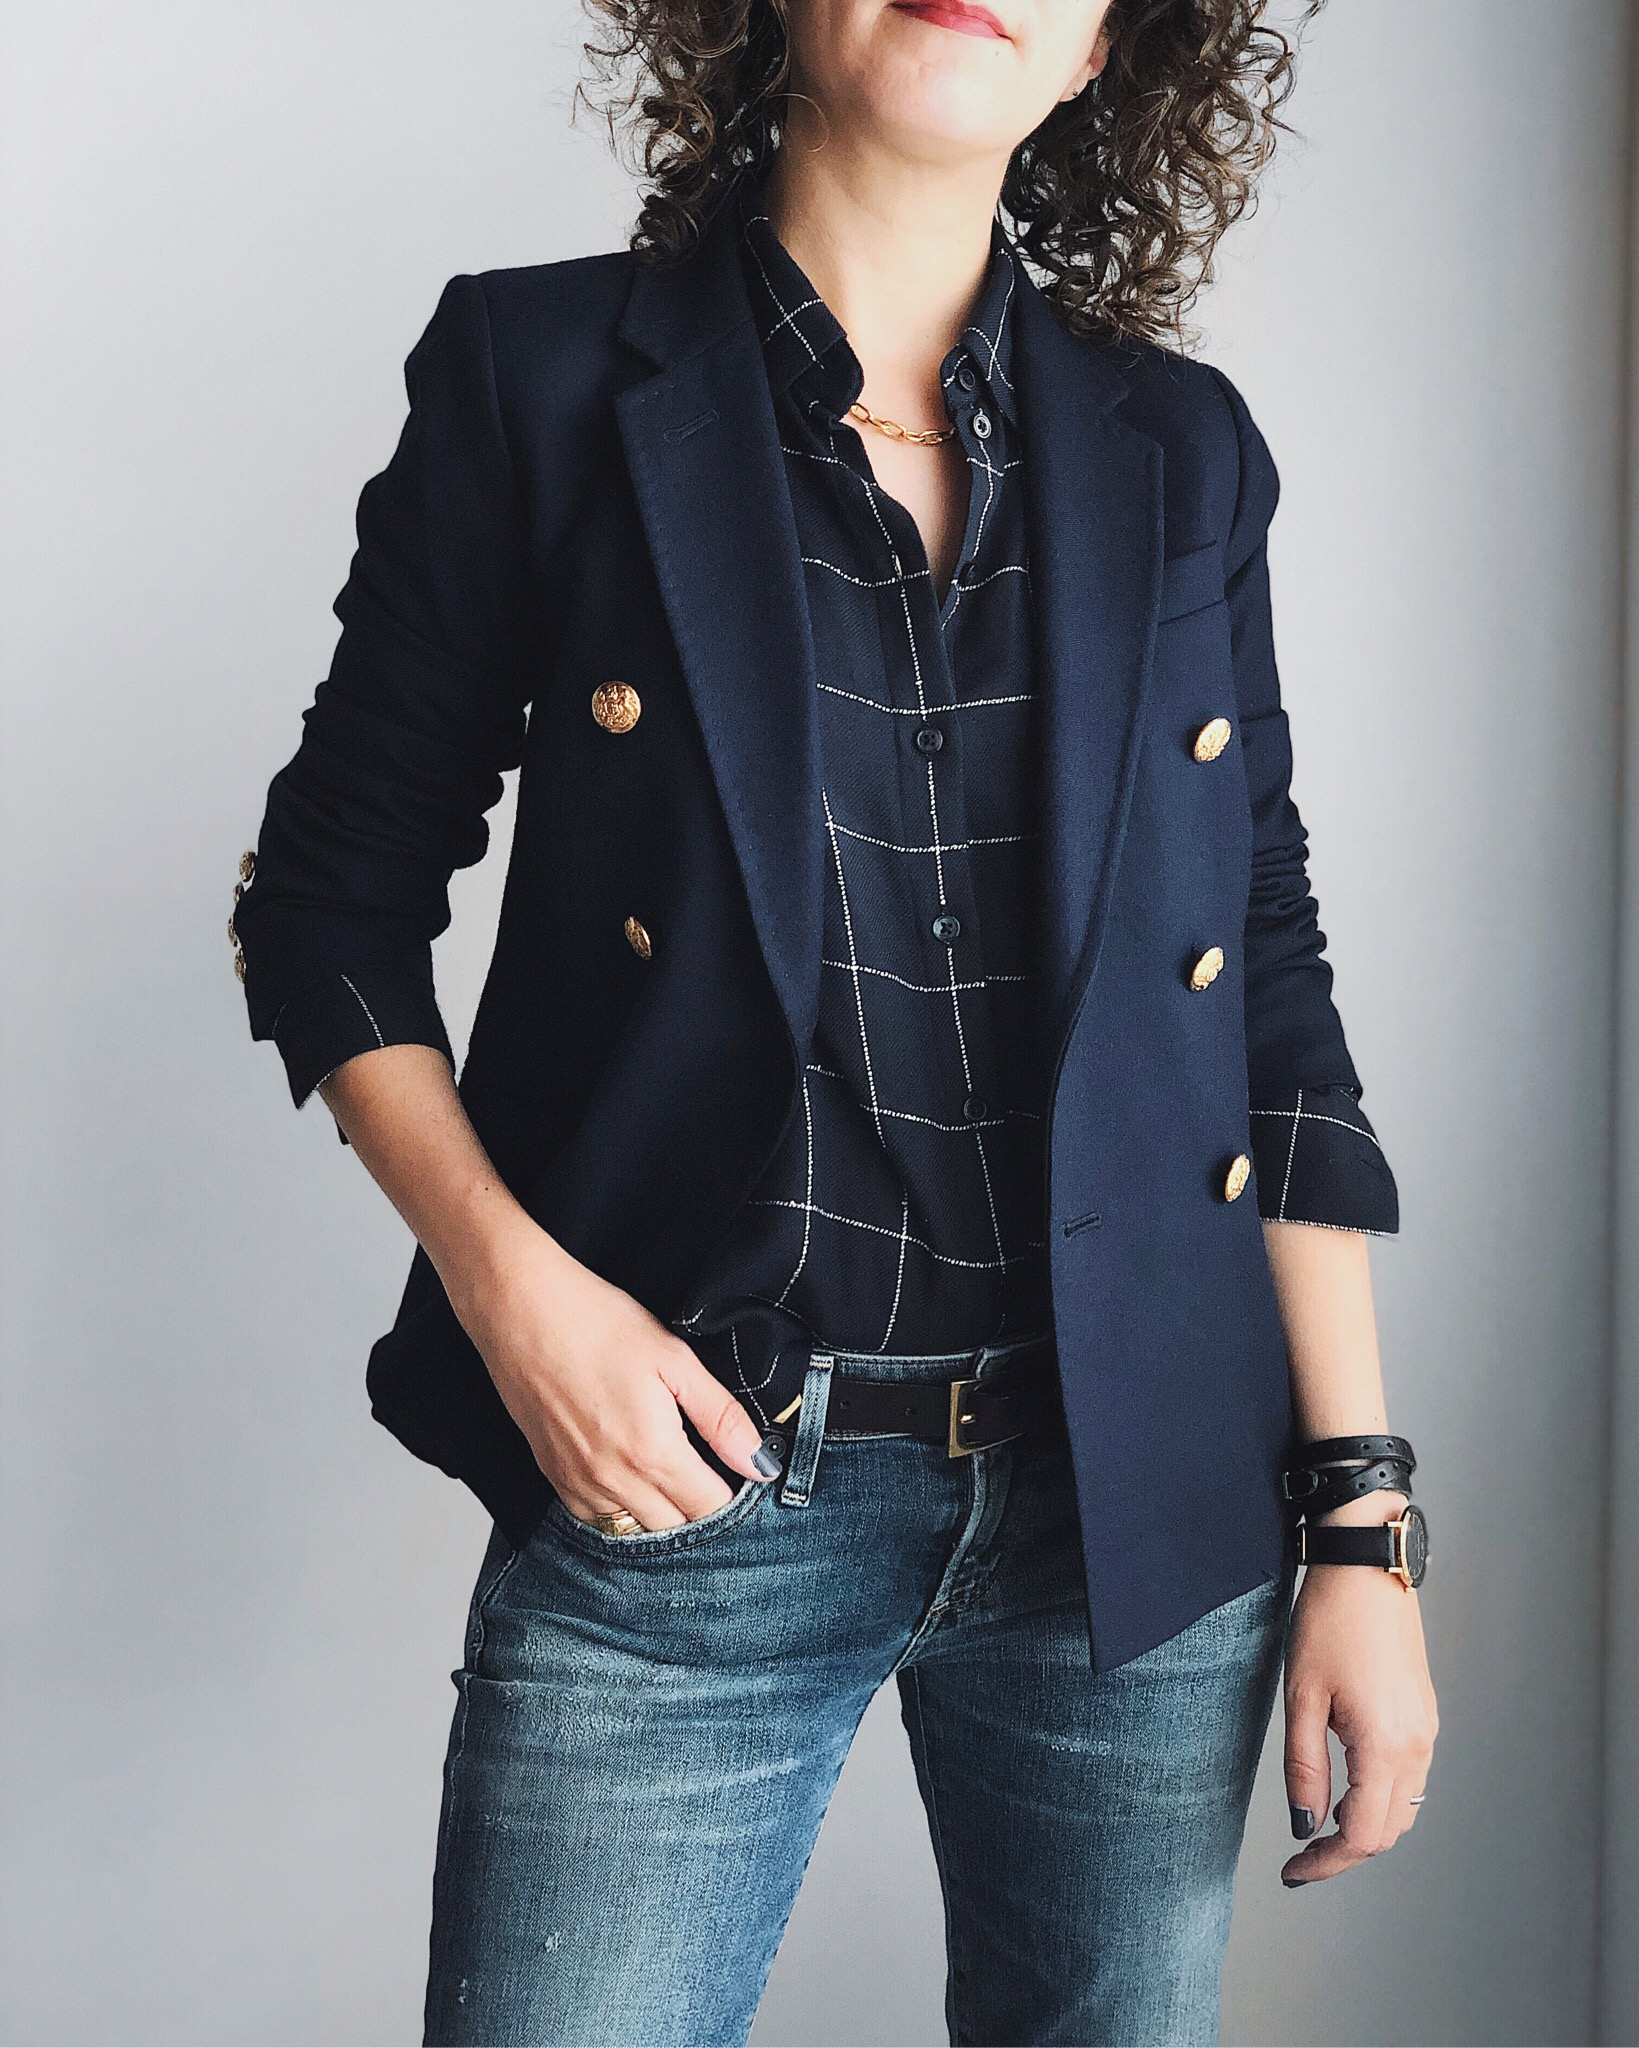 Preppy in double breasted blazer and windowpane shirt